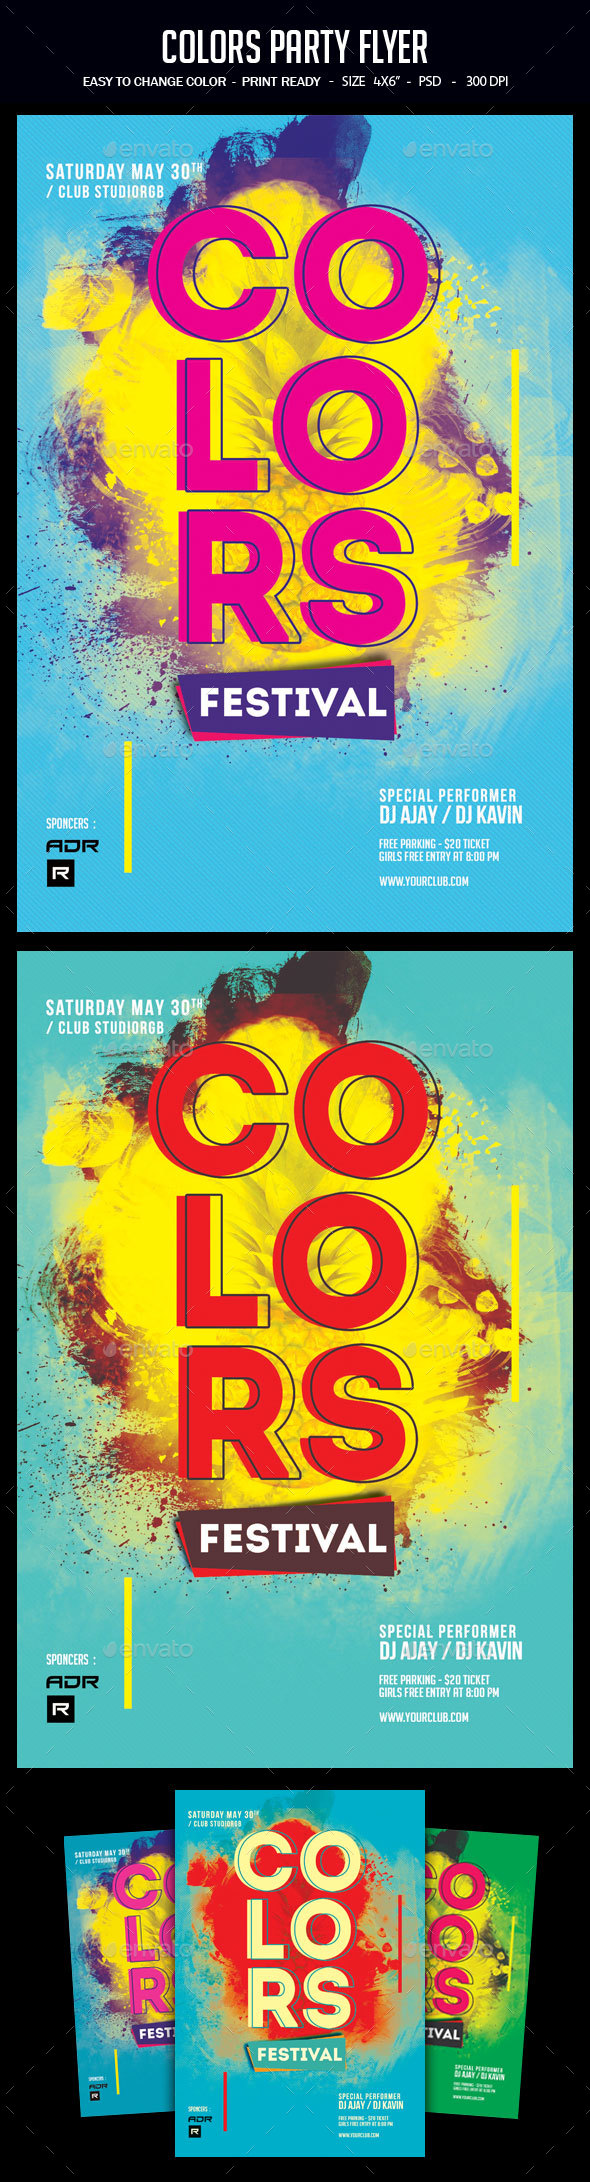 Colors Party Flyer - Clubs & Parties Events